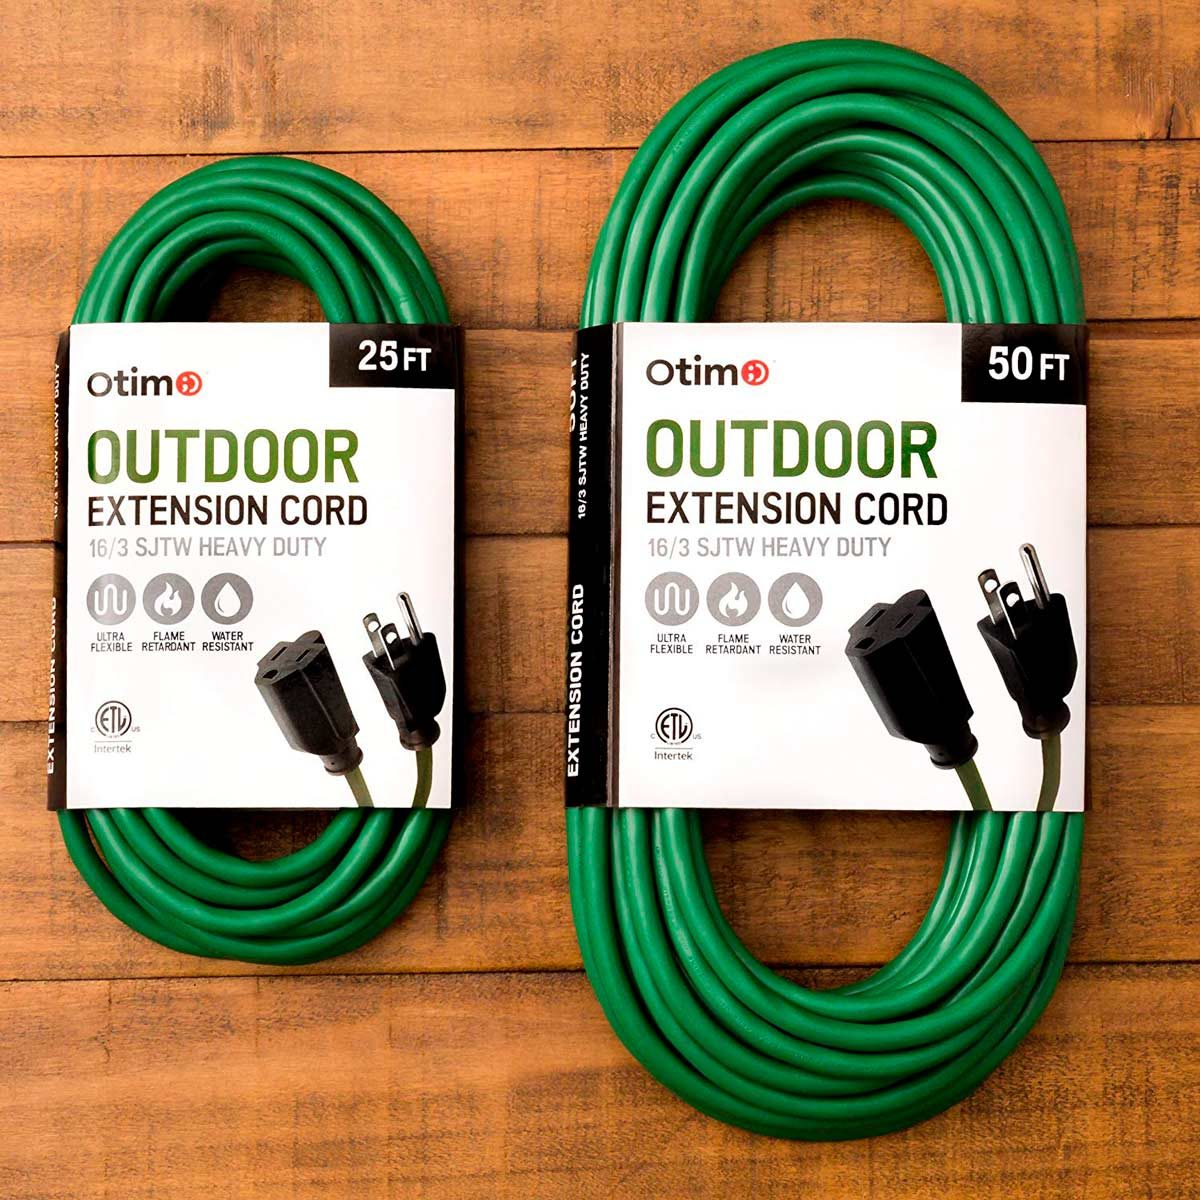 Garage Heater Extension Cord The 5 Best Extension Cords For Outdoor Christmas Light Displays